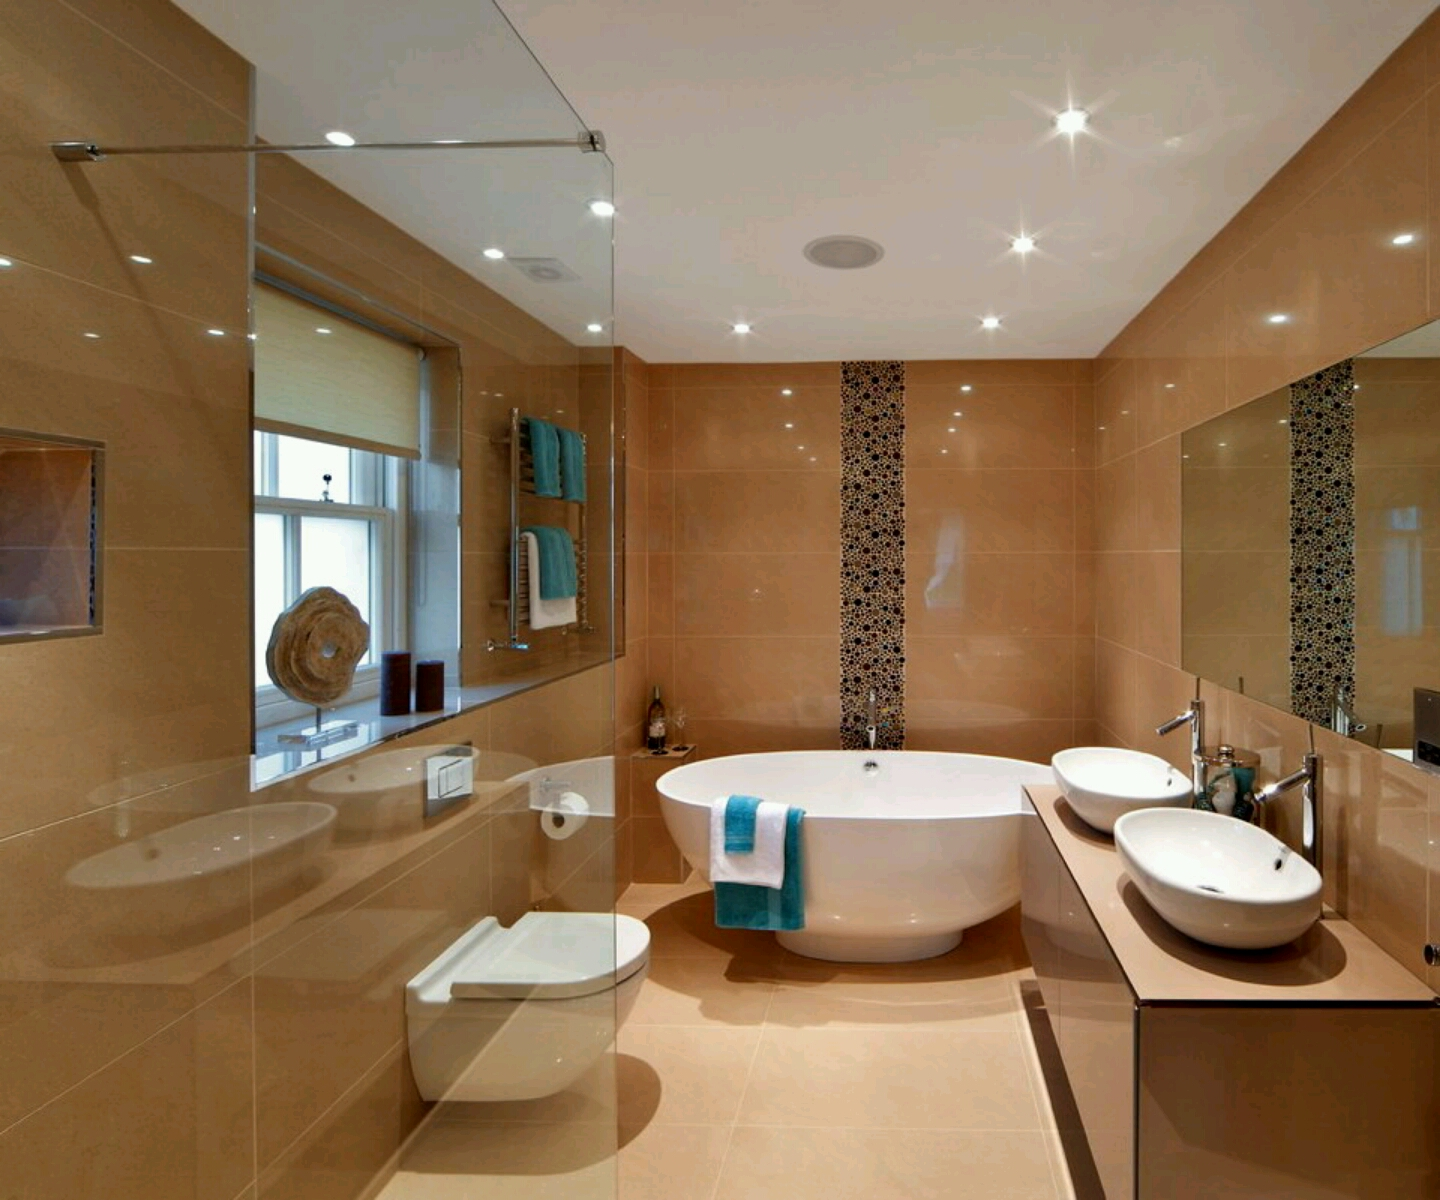 New home designs latest luxury modern bathrooms designs for Bathroom modern design